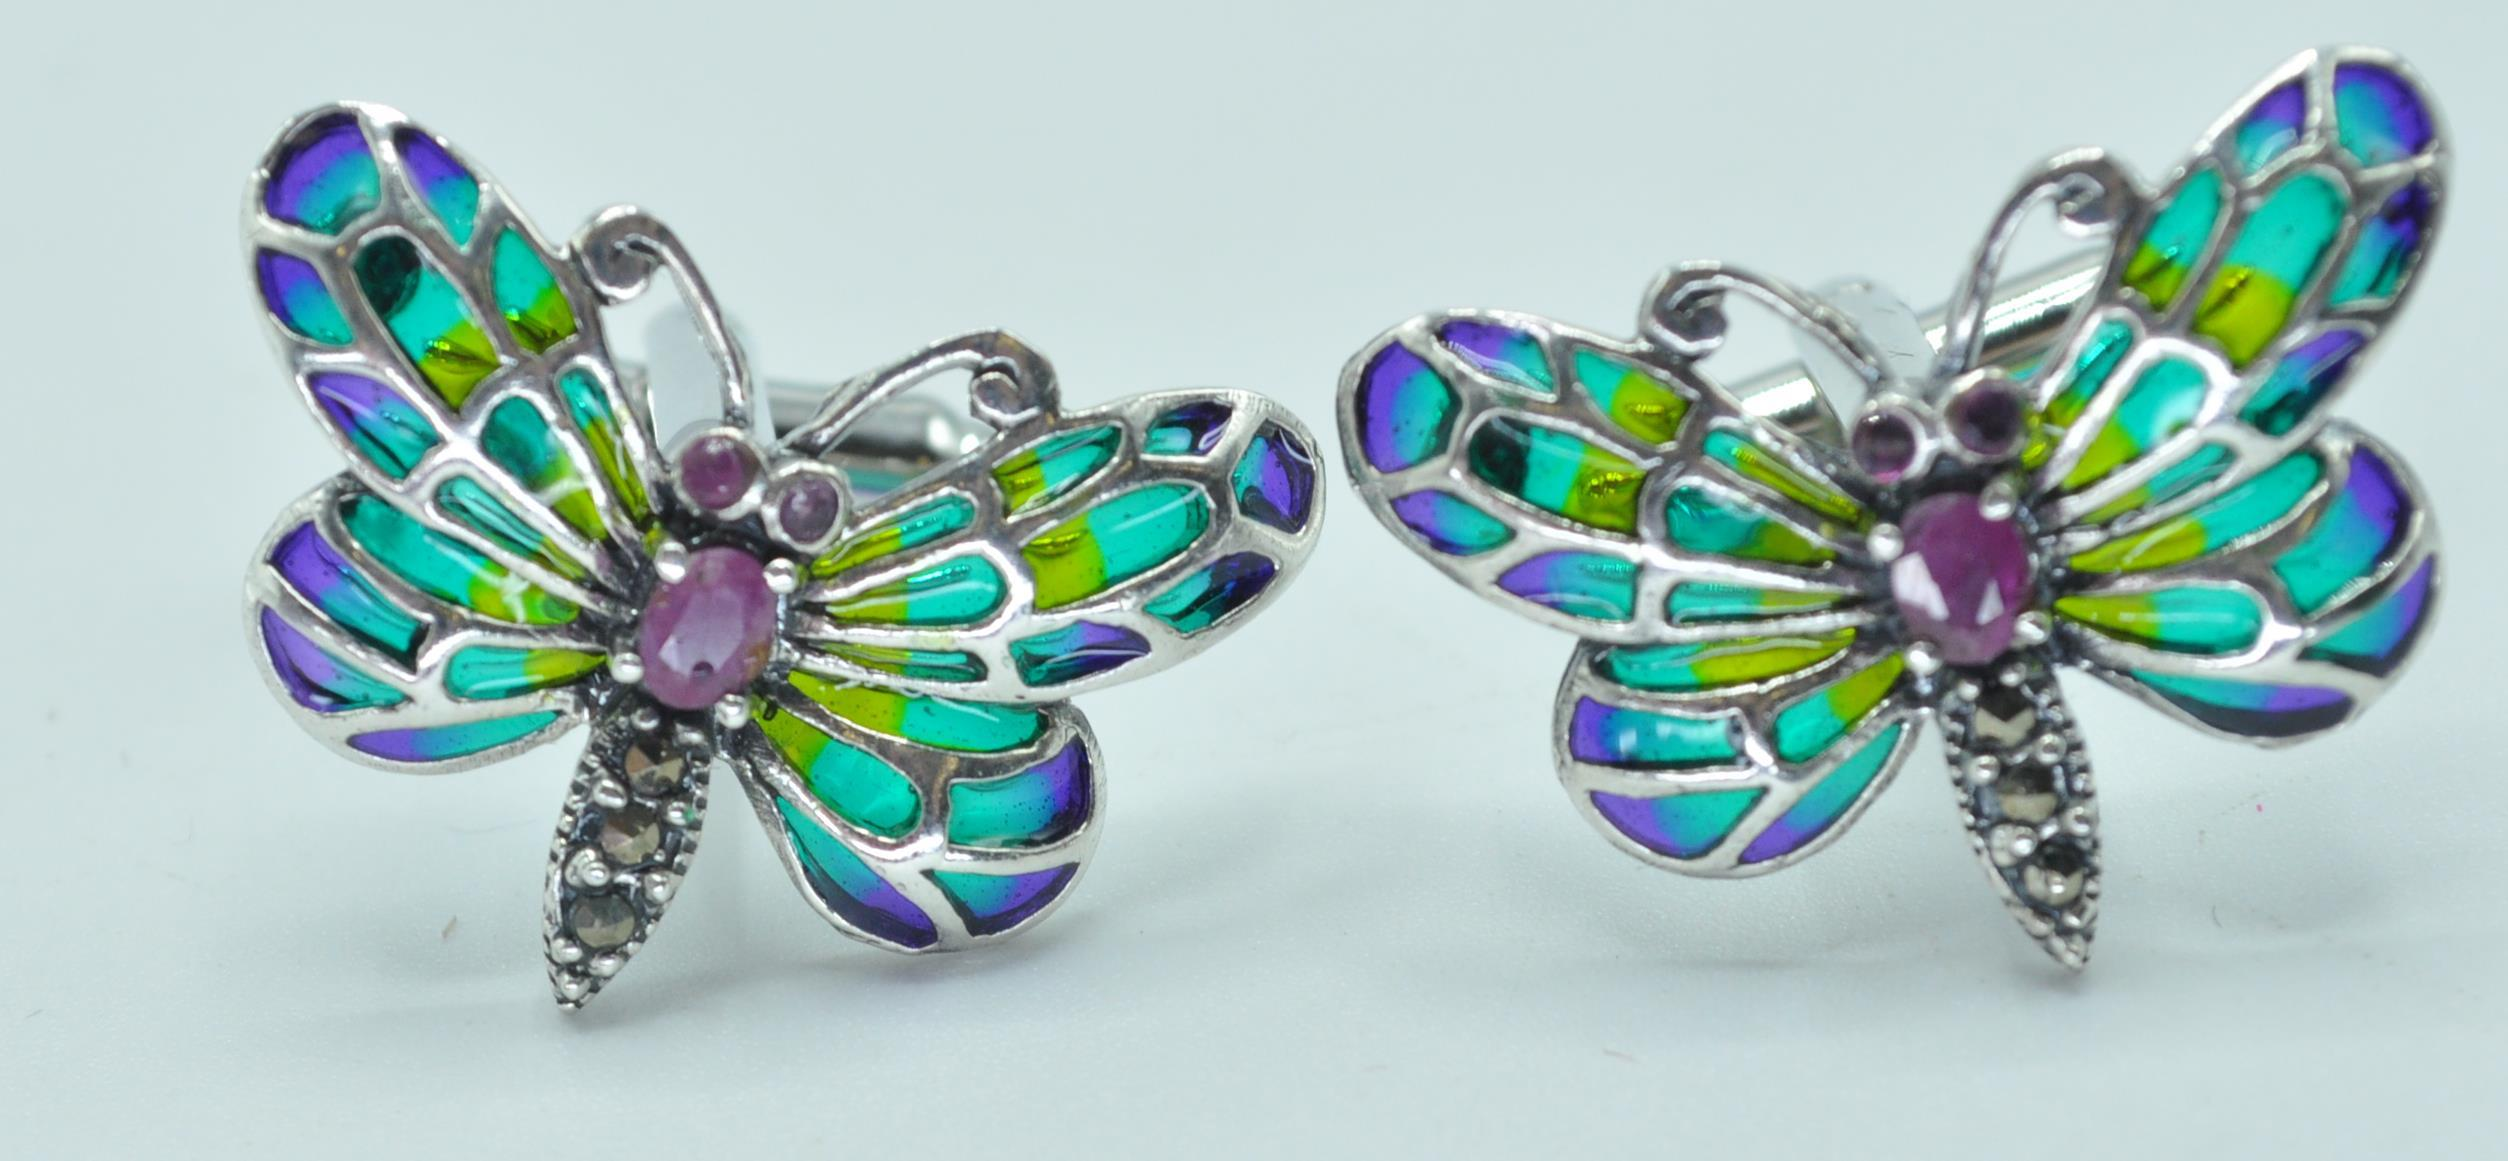 PAIR OF STAMPED 925 SILVER BUTTERFLY CUFFLINKS. - Image 3 of 4